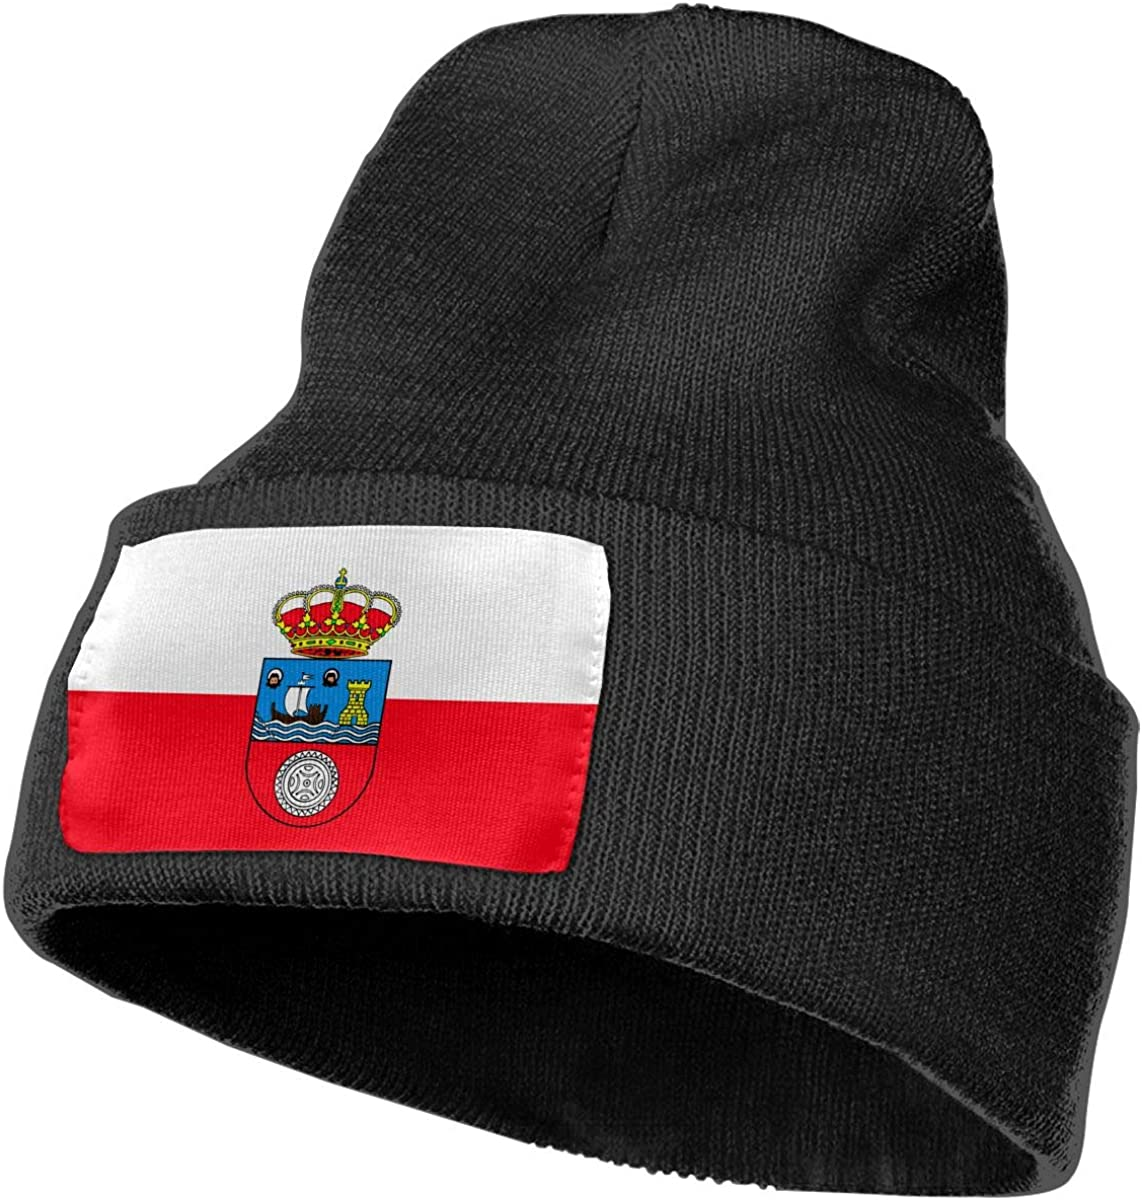 JimHappy Flag of Poland Hat for Men and Women Winter Warm Hats Knit Slouchy Thick Skull Cap